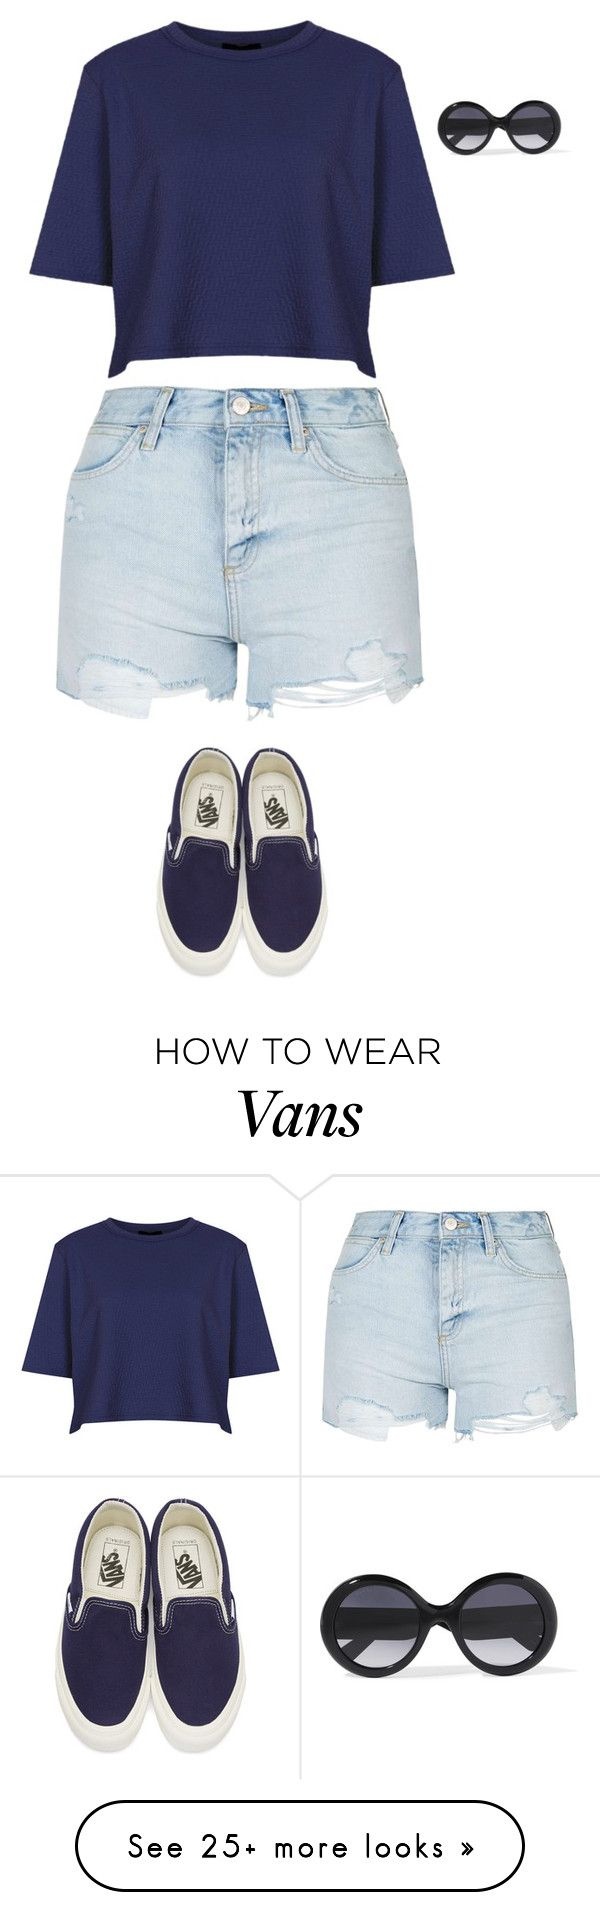 """""""Topshop, Vans, Gucci"""" by shaidnns on Polyvore featuring Topshop, Vans and Gucci"""